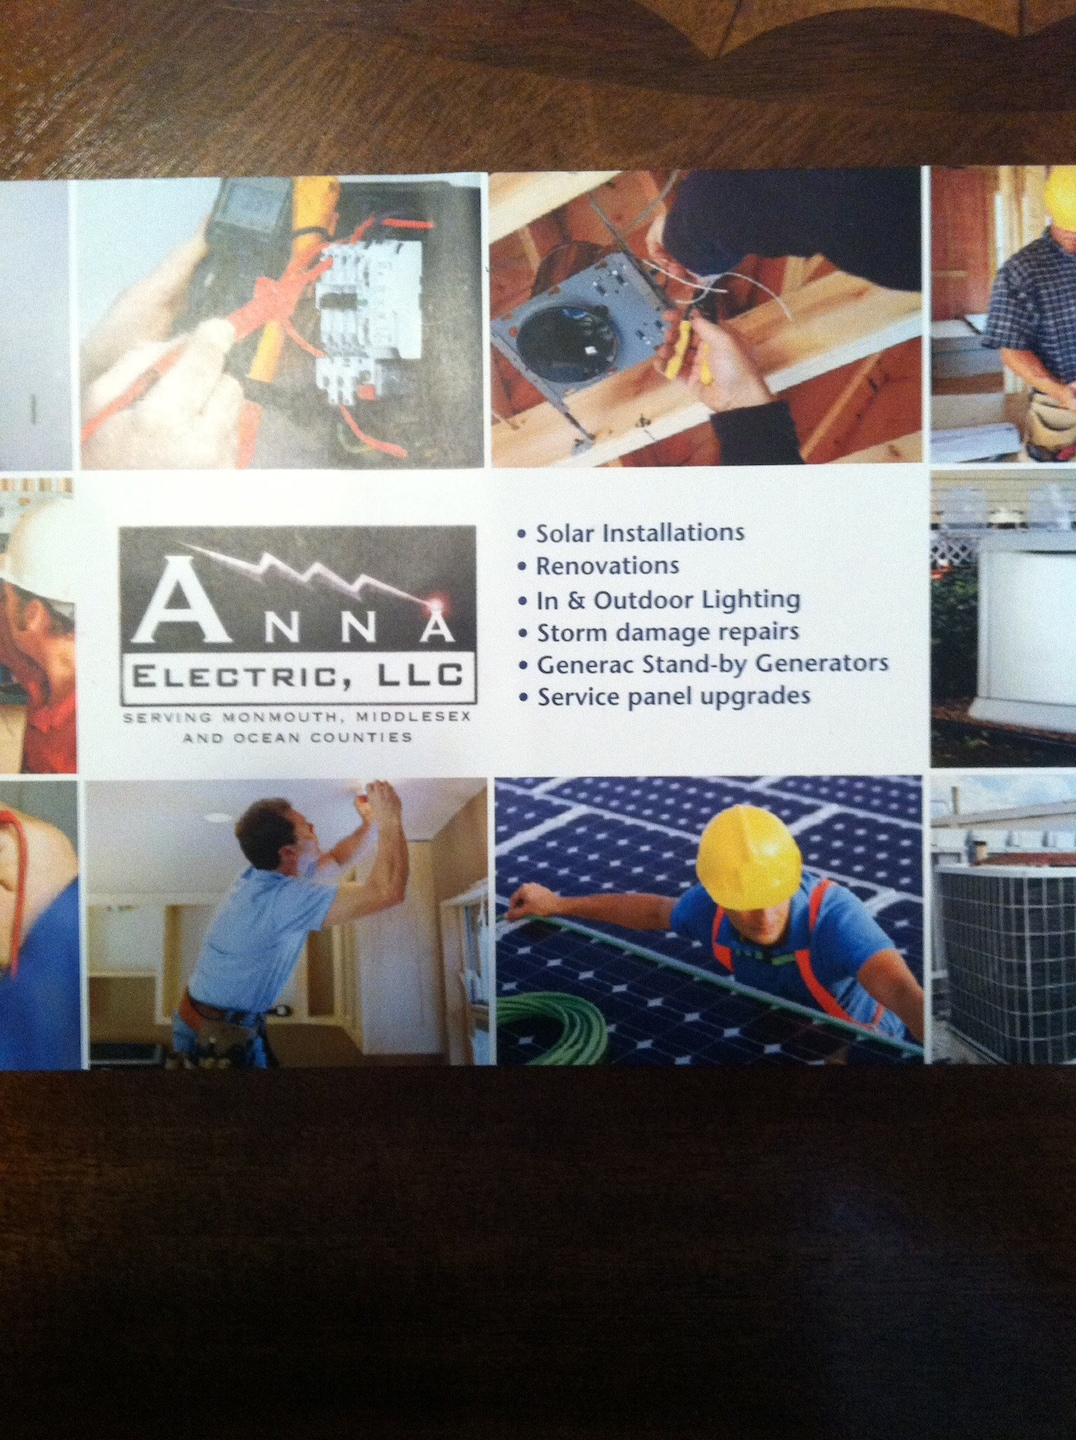 Anna Electric, LLC.